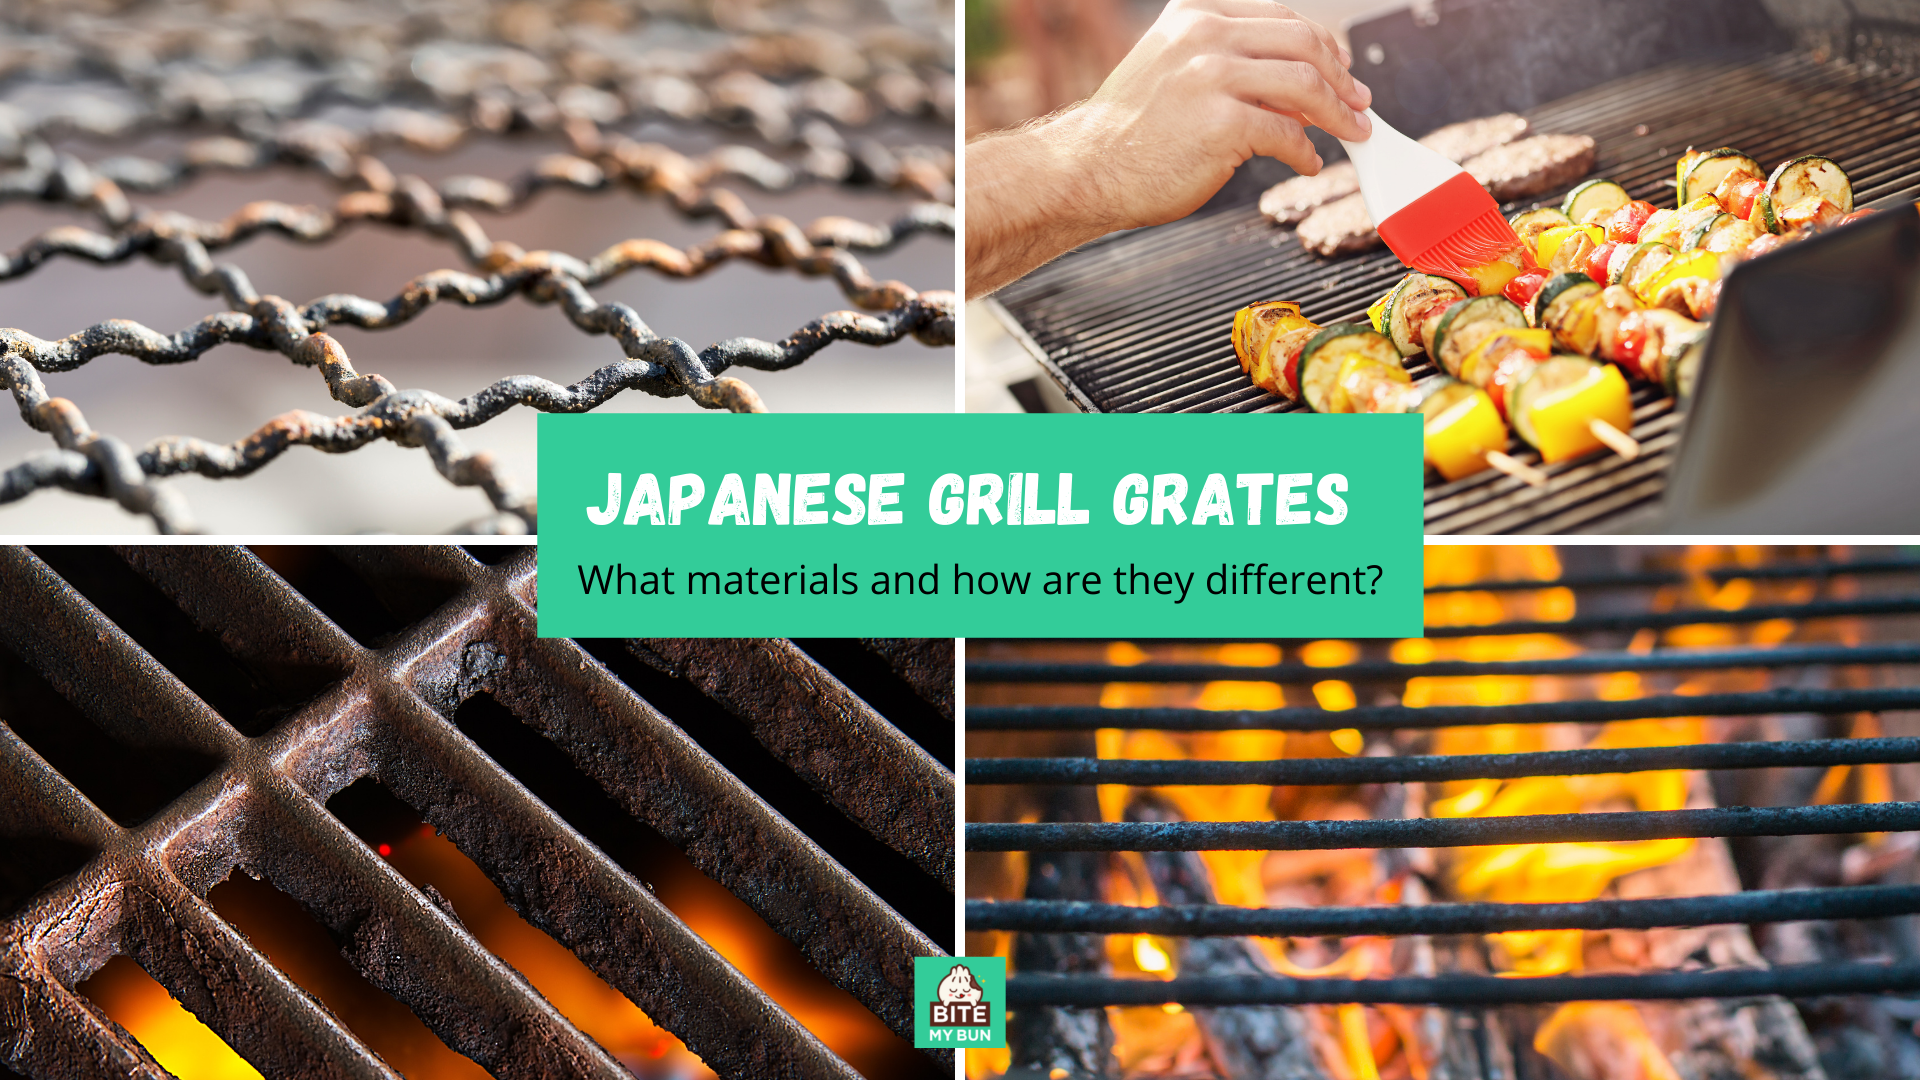 Japanese grill grates   What materials and how are they different?